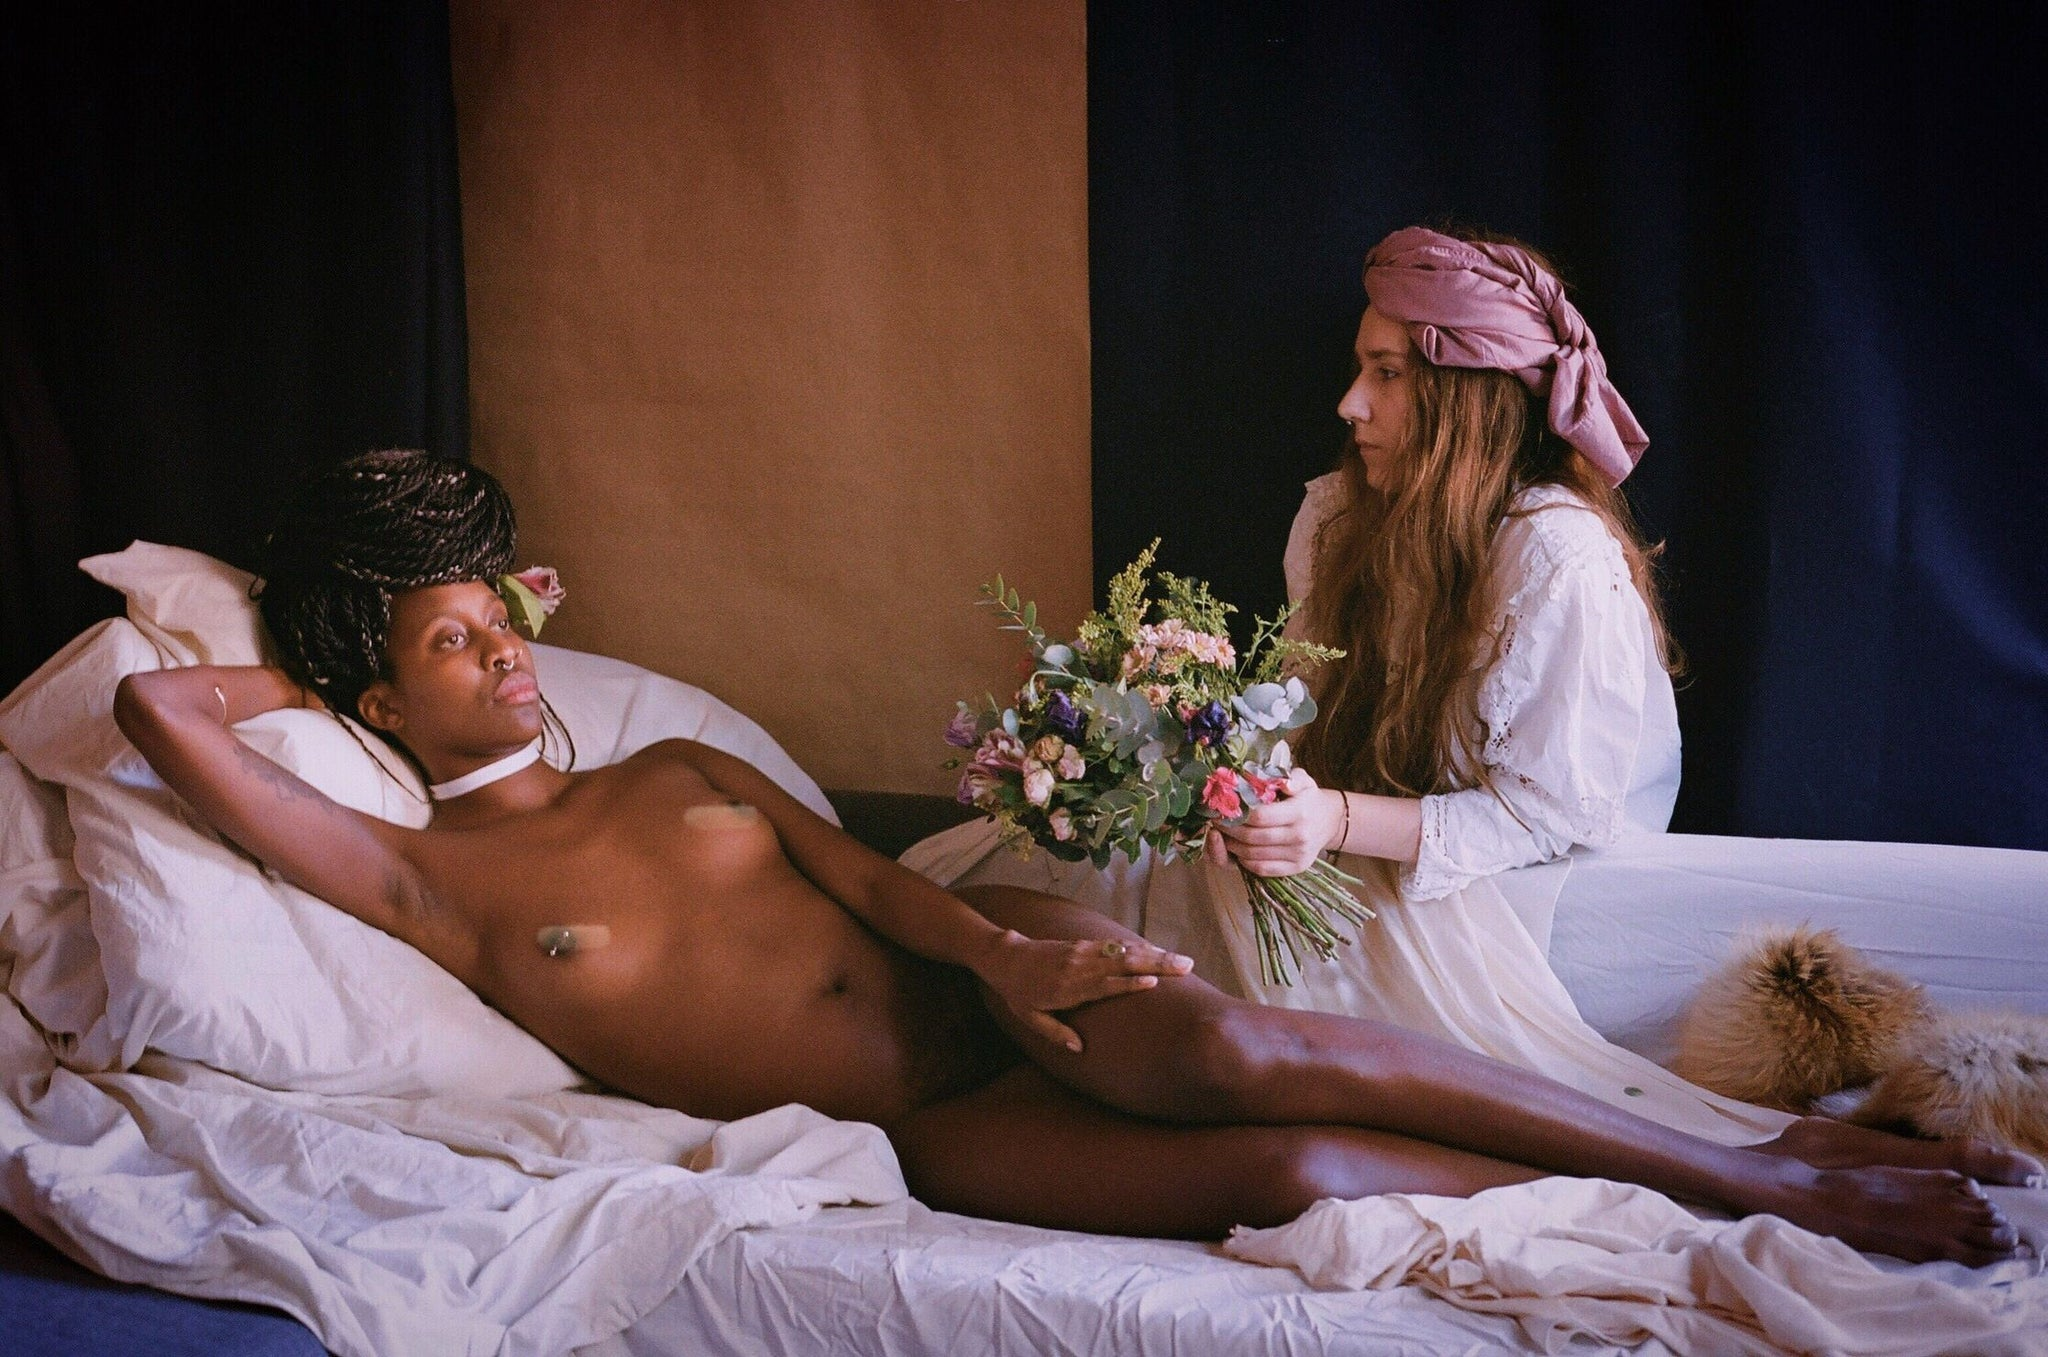 Naked woman in bed with flowers Antonella Tignanelli Can Pep Rey